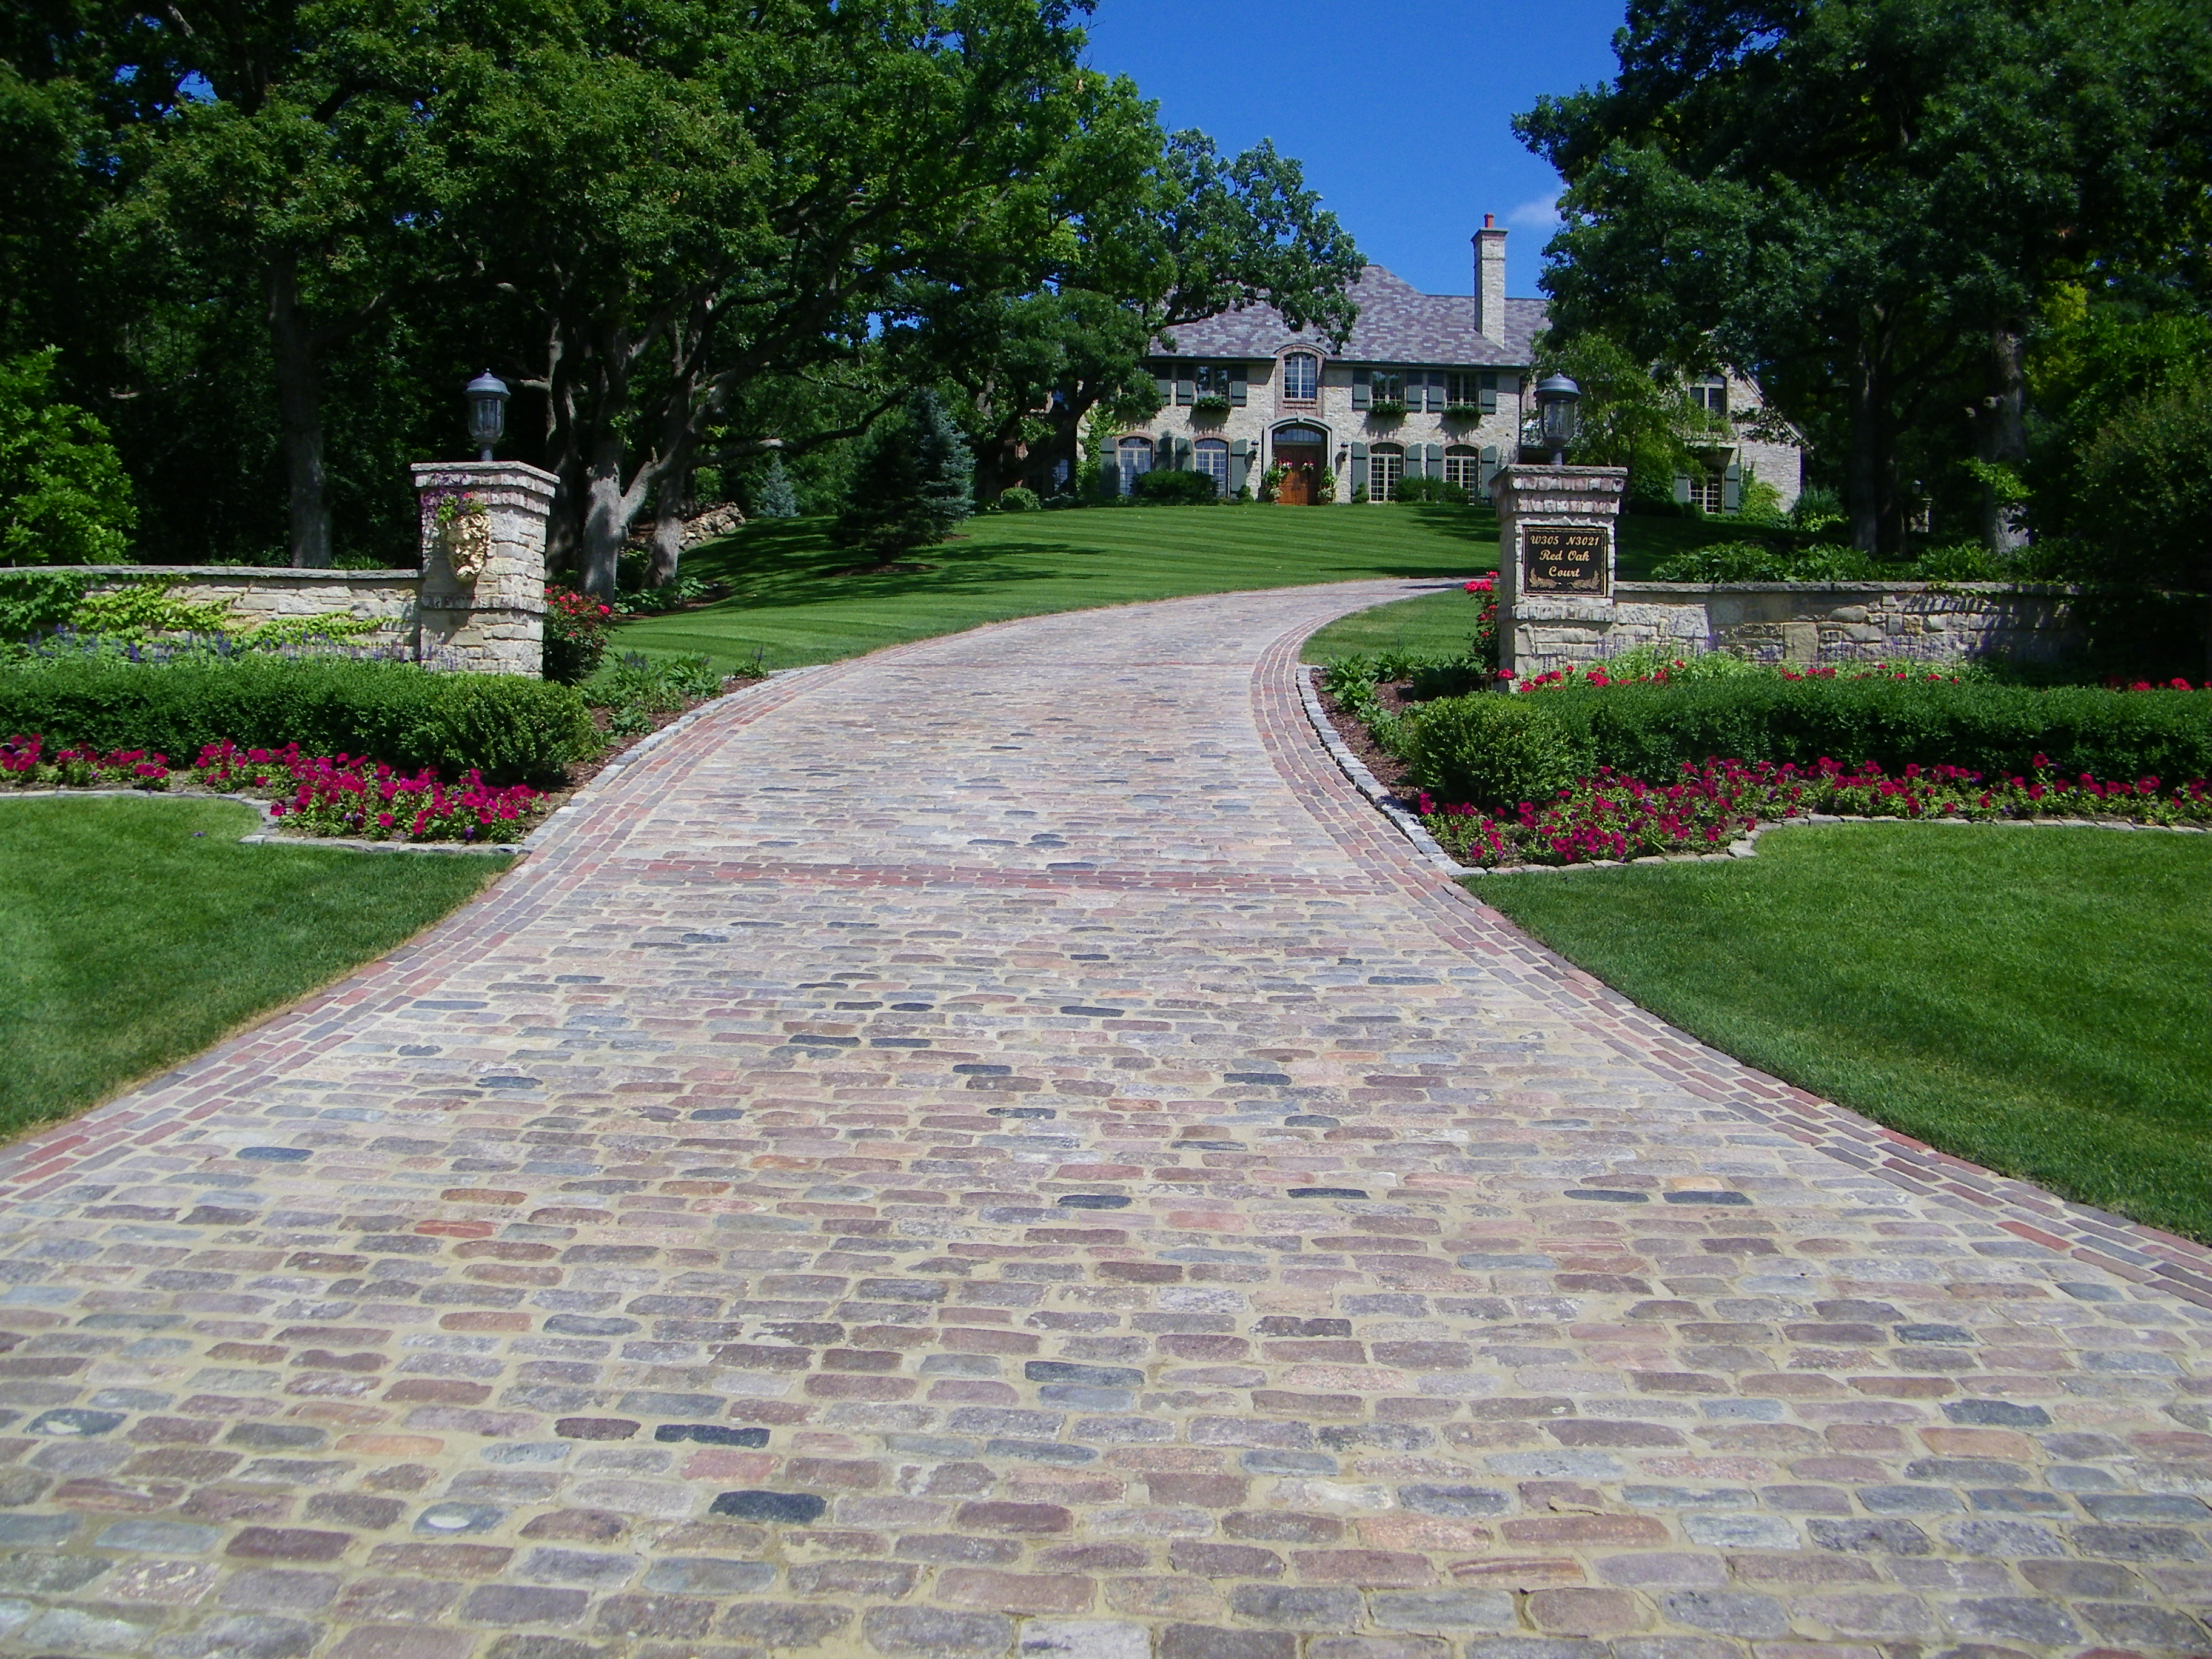 Antique Brick and Granite Company - We sell